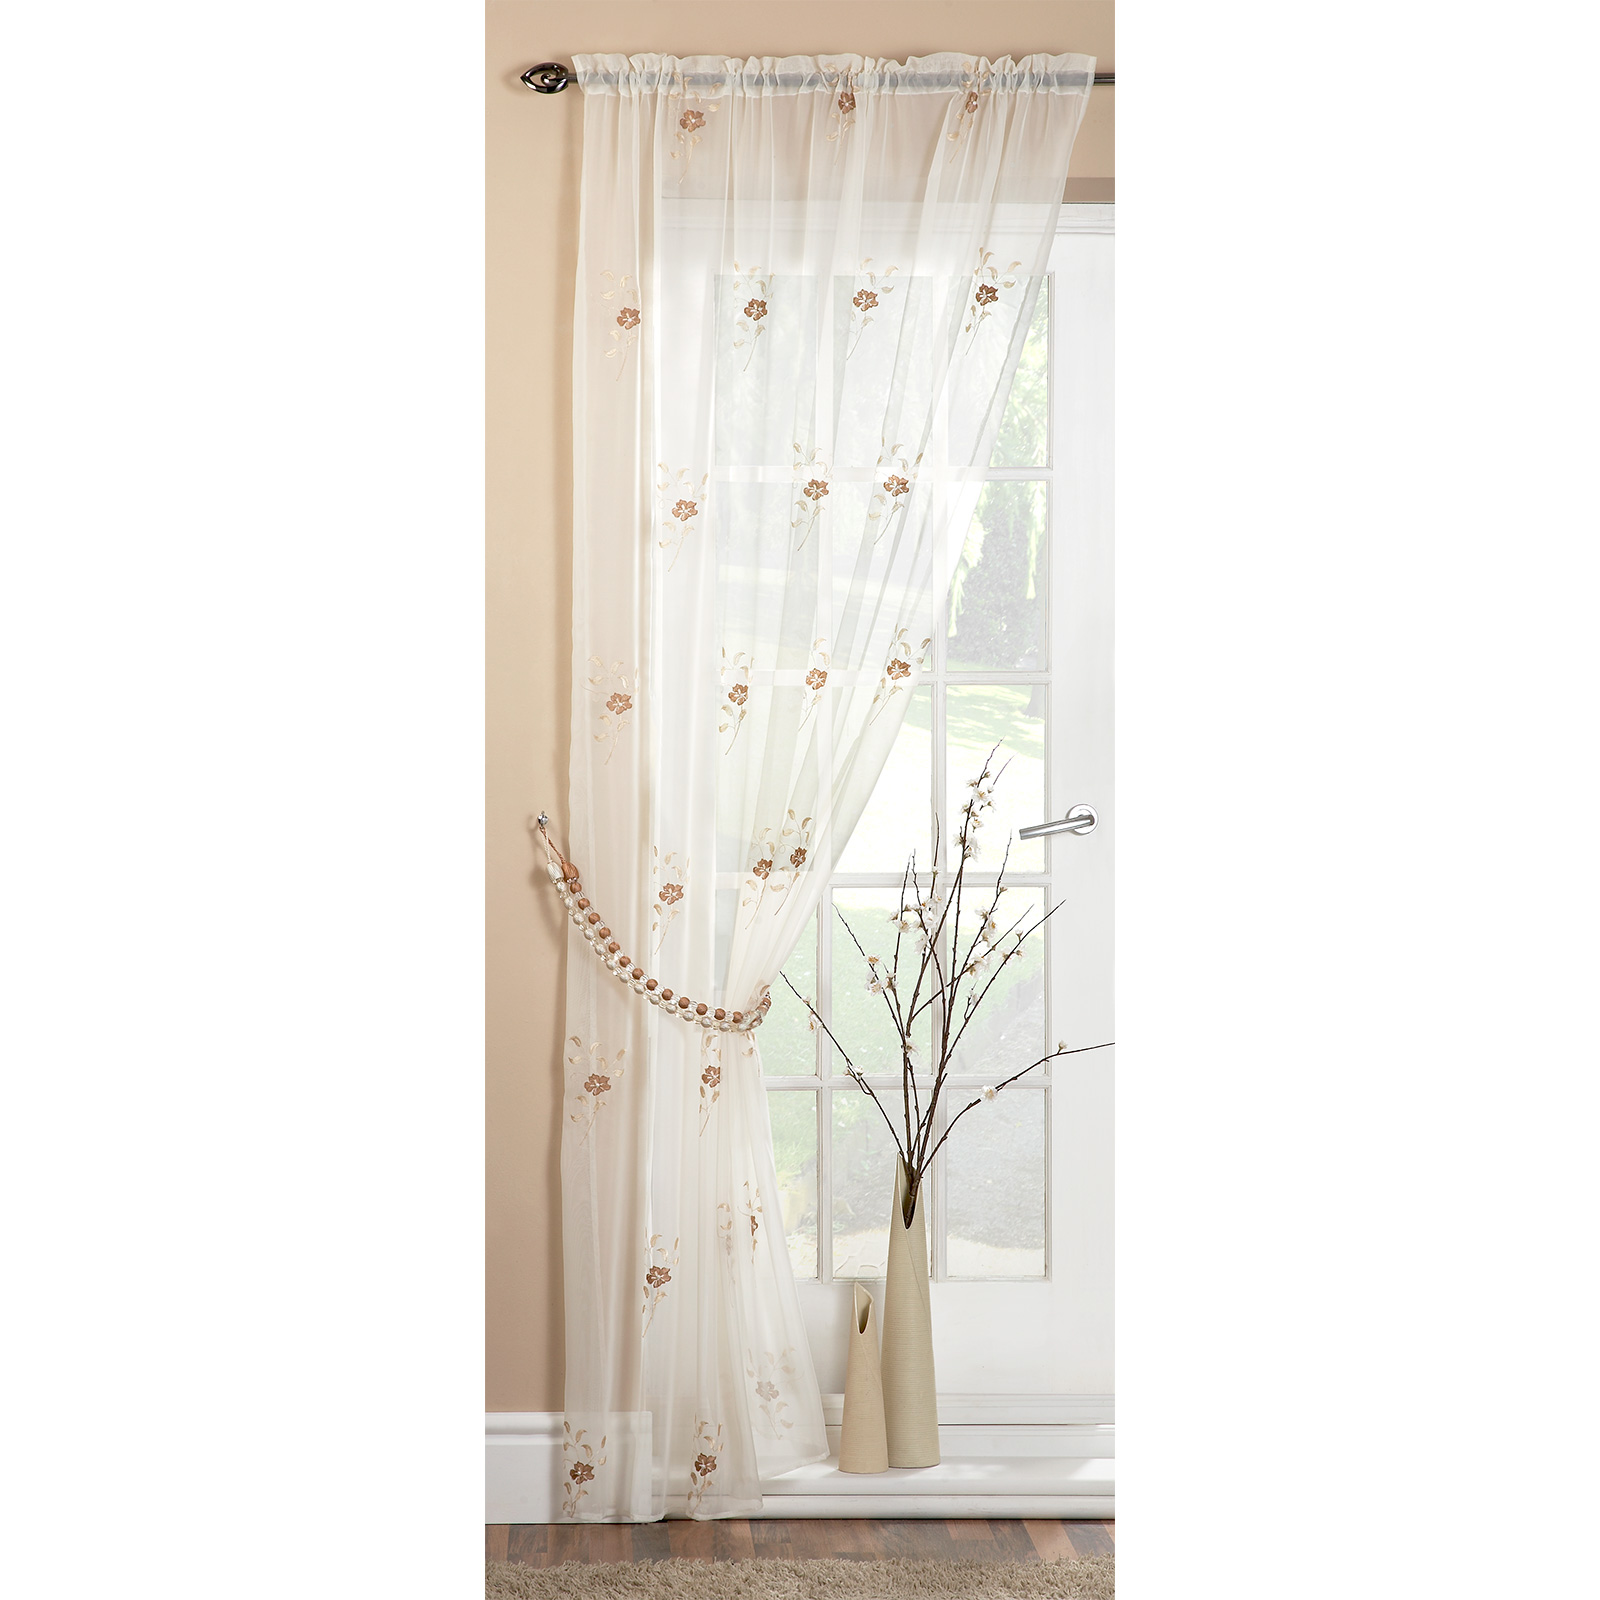 Pearl Voile Panel Floral Embroidered Ready Made Sheer Curtain Net Panel Ebay